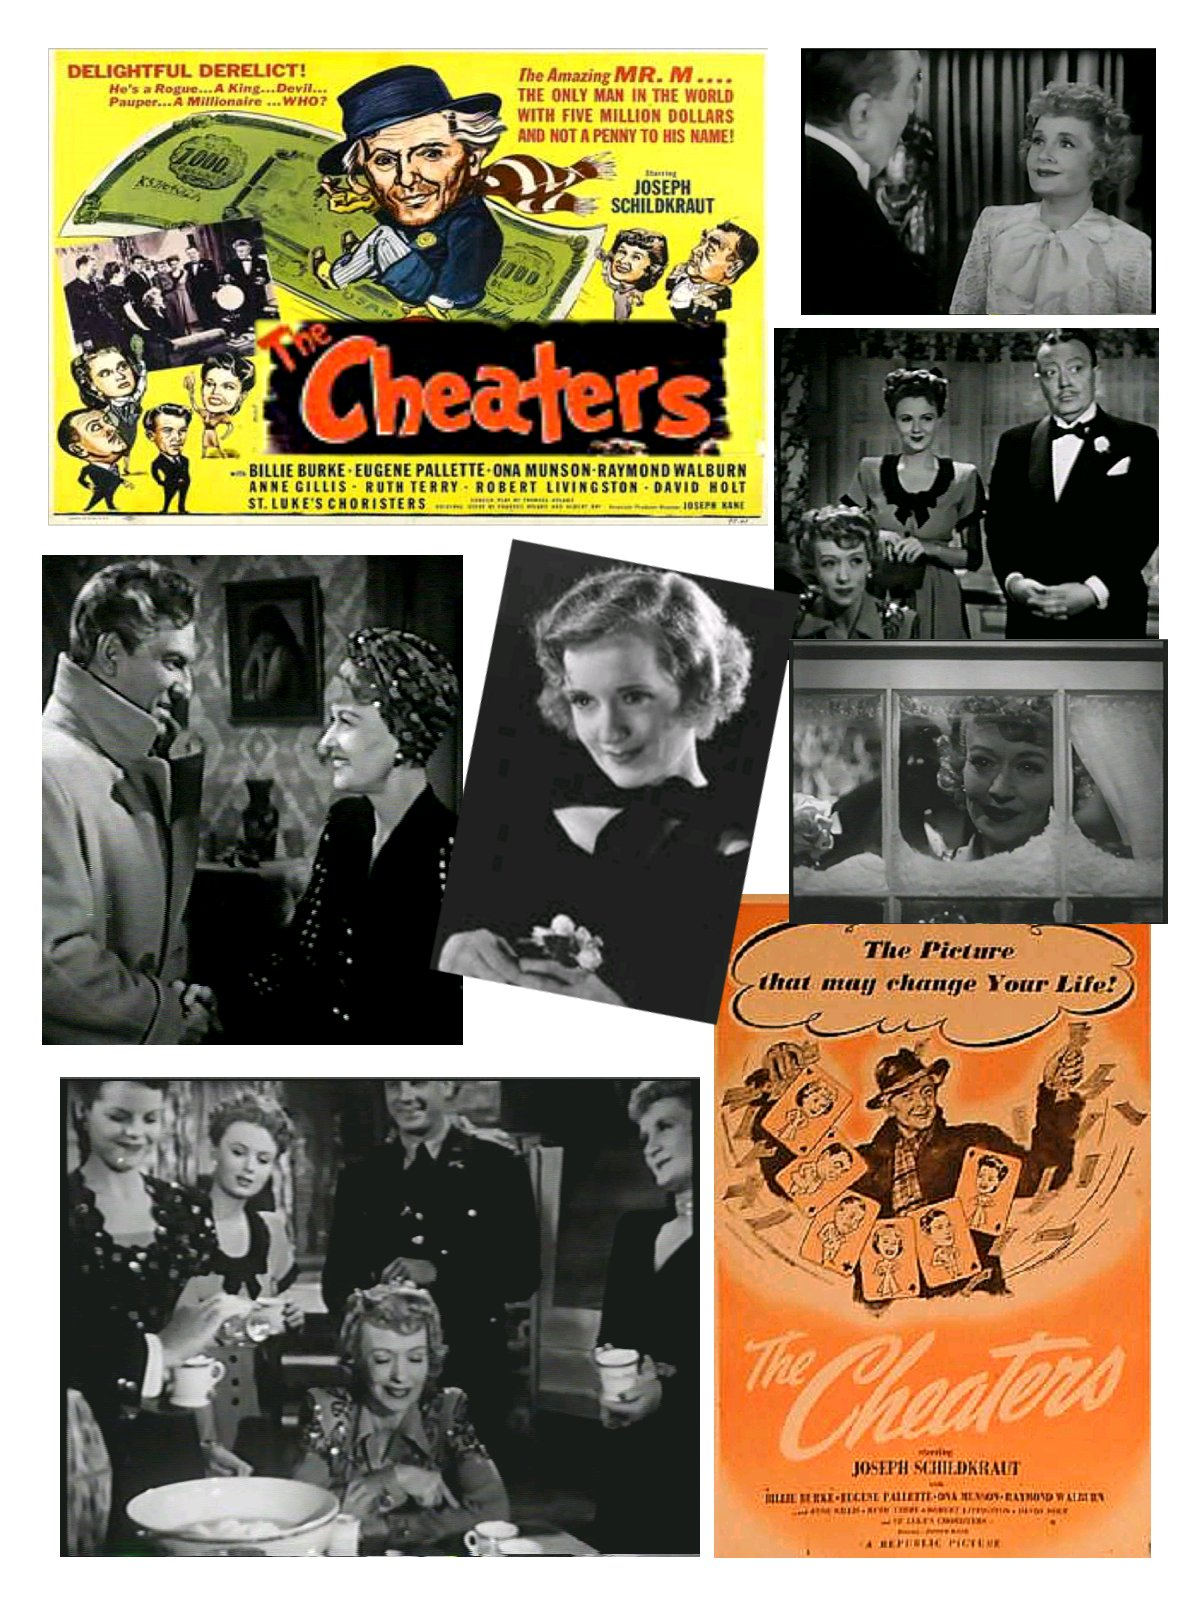 The Cheaters (1945) Billie Burke + Billie Burke Radio Show